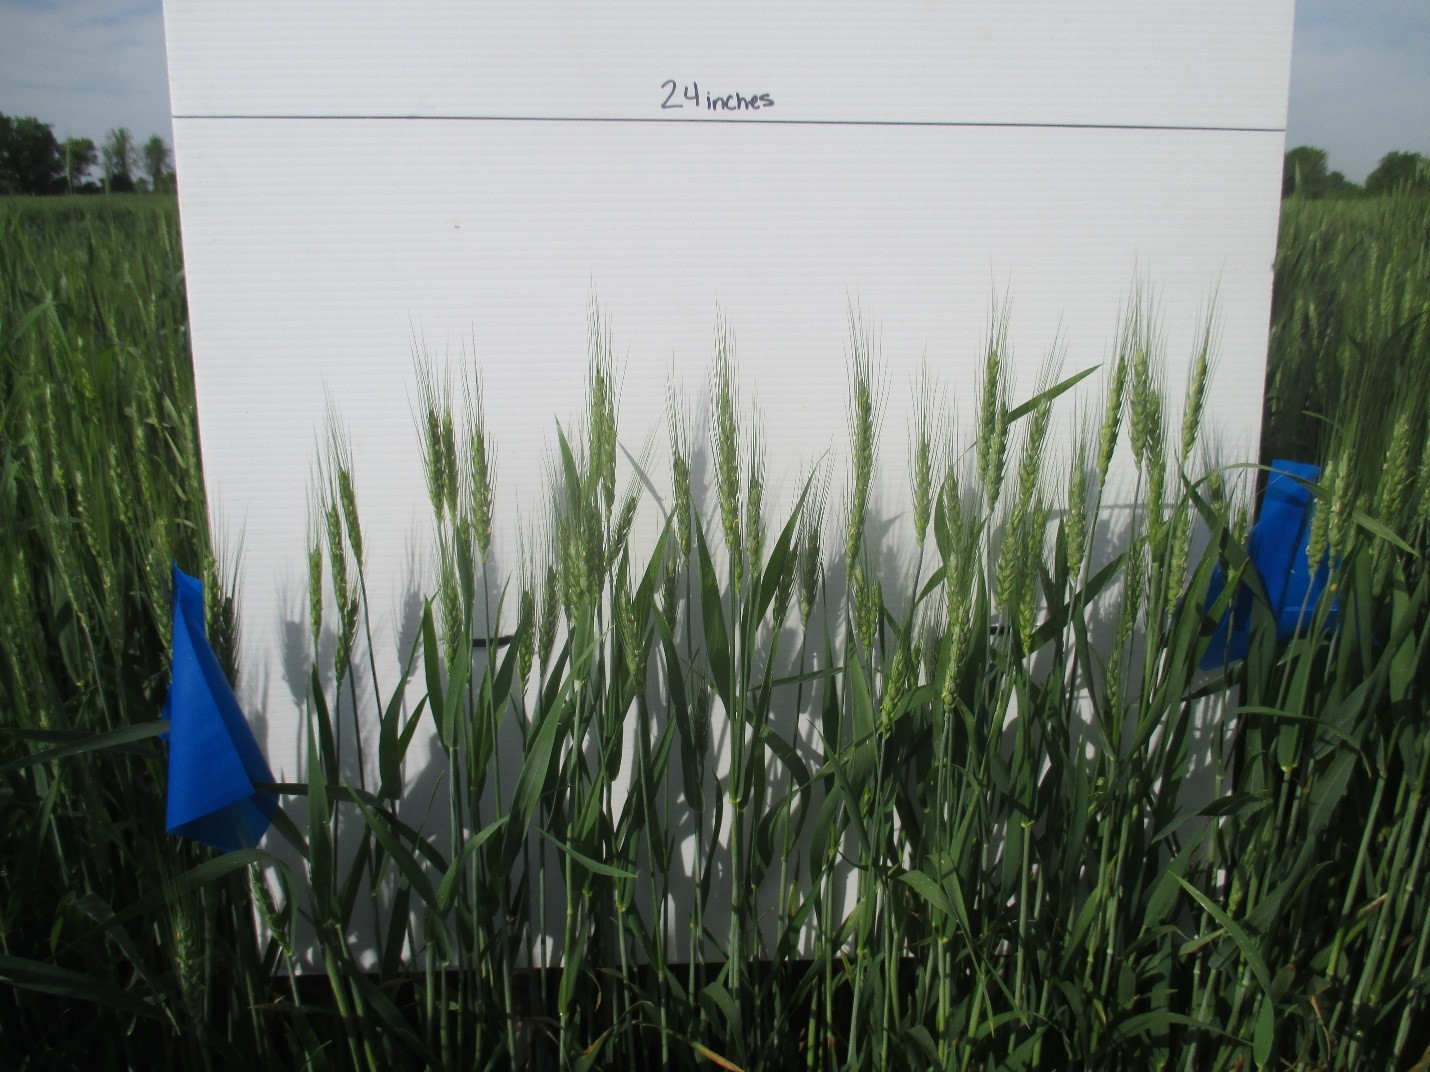 Photos of wheat plots were taken every day for 14 days to determine each plot's heading and flowering uniformity. Photo: Katherine Rod